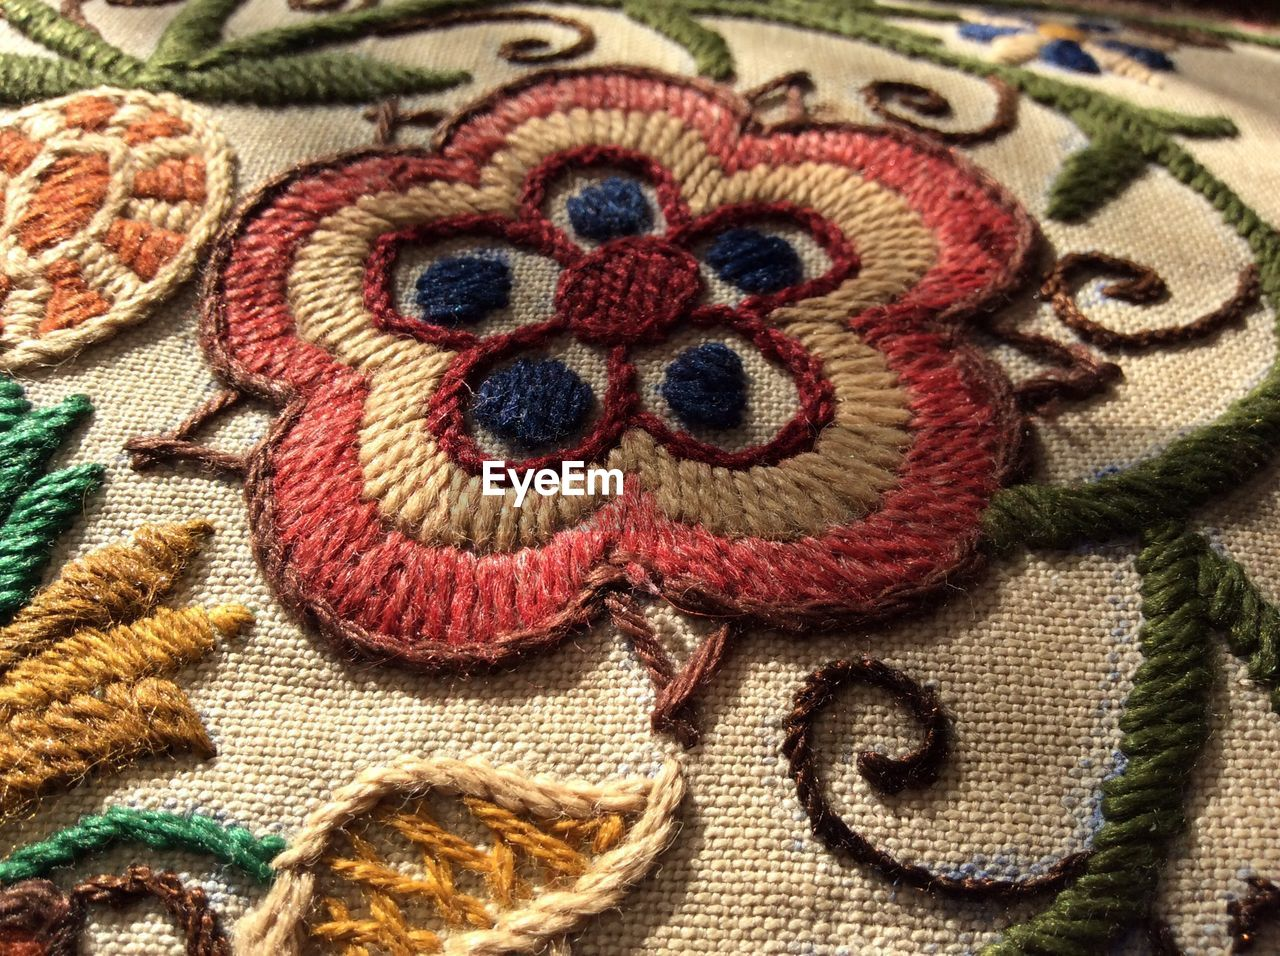 textile, art and craft, close-up, creativity, pattern, no people, multi colored, wool, craft, full frame, indoors, animal representation, animal, backgrounds, animal themes, still life, clothing, representation, mammal, knitted, floral pattern, embroidery, warm clothing